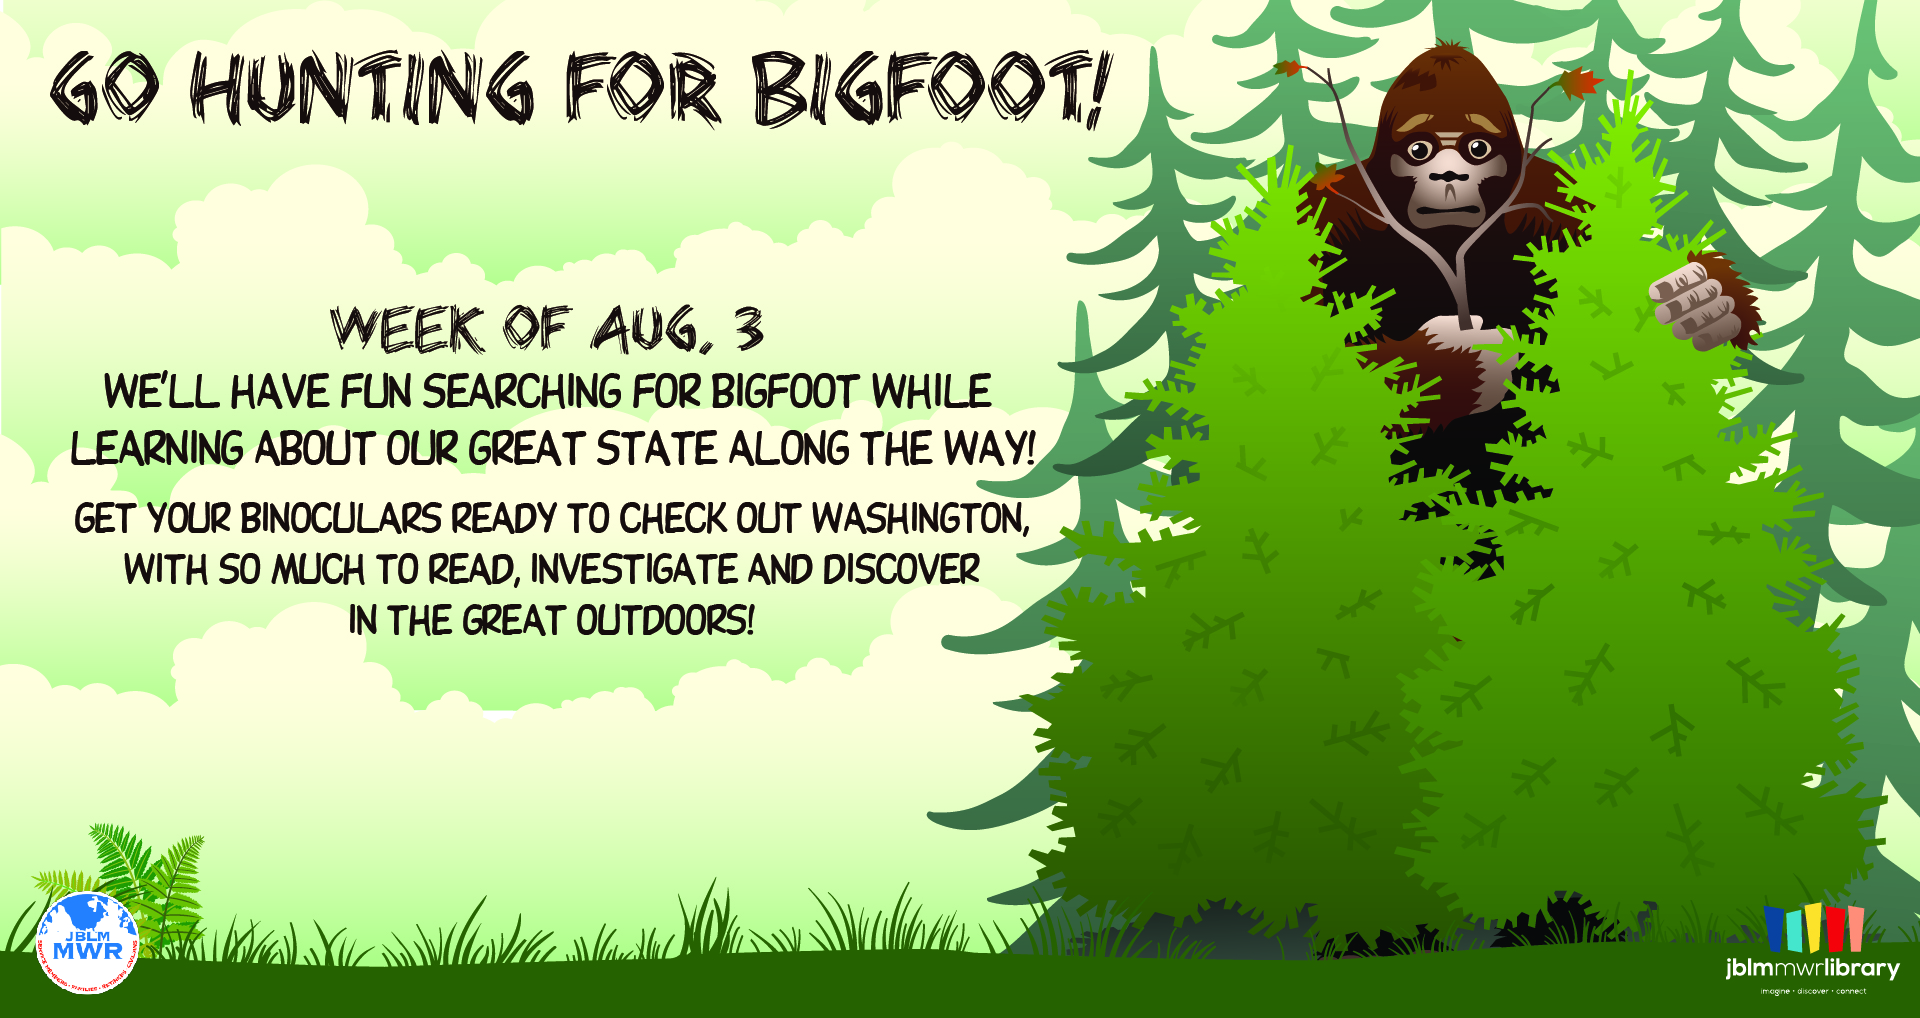 Virtual Summer Reading Program: Go hunting for Bigfoot!